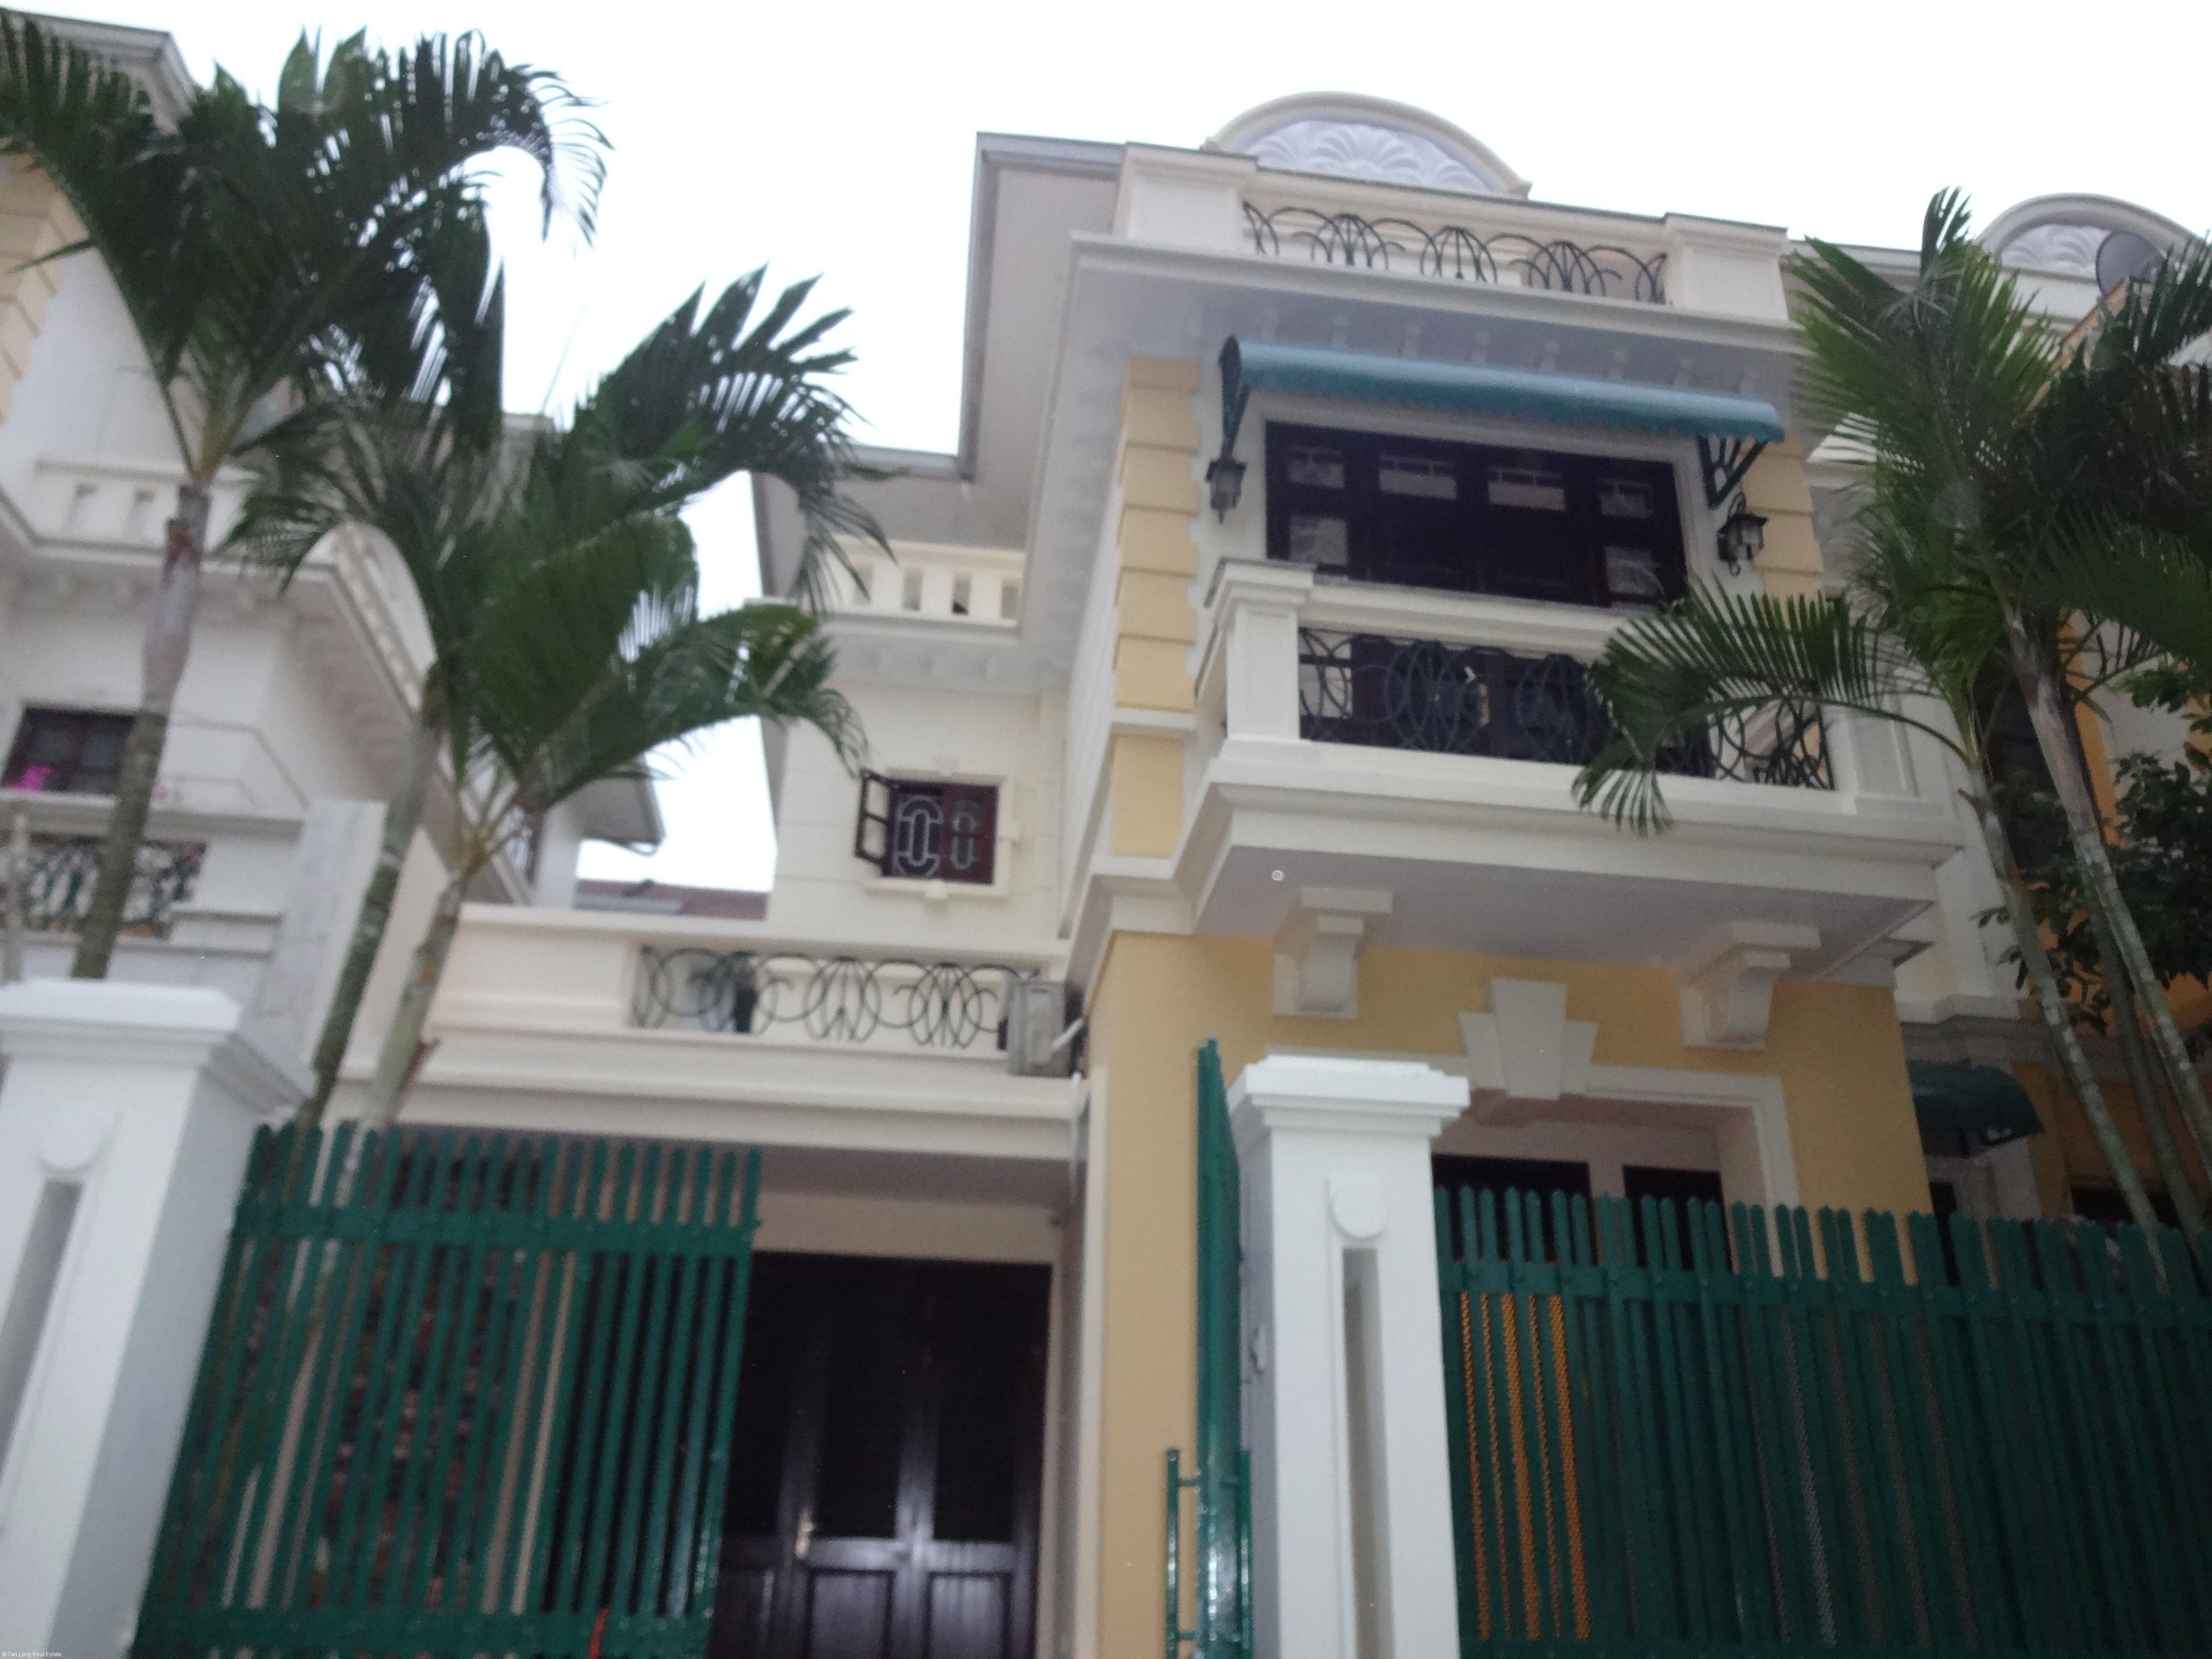 Rental villa in Ciputra in C2 Block (Ref: R1503)